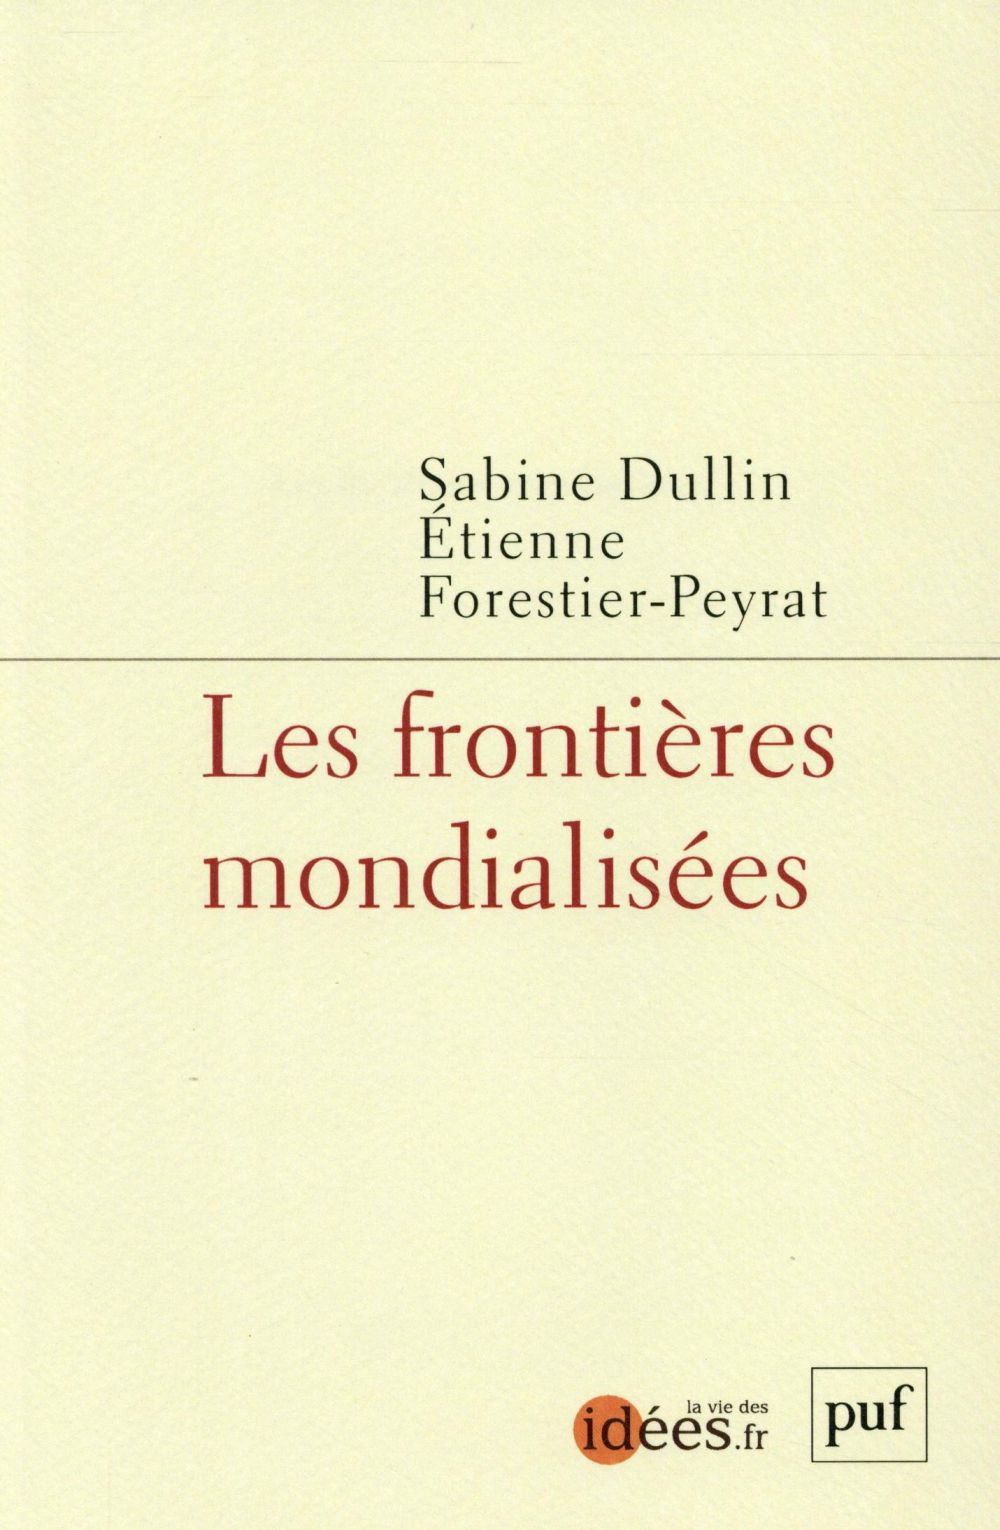 LES FRONTIERES MONDIALISEES